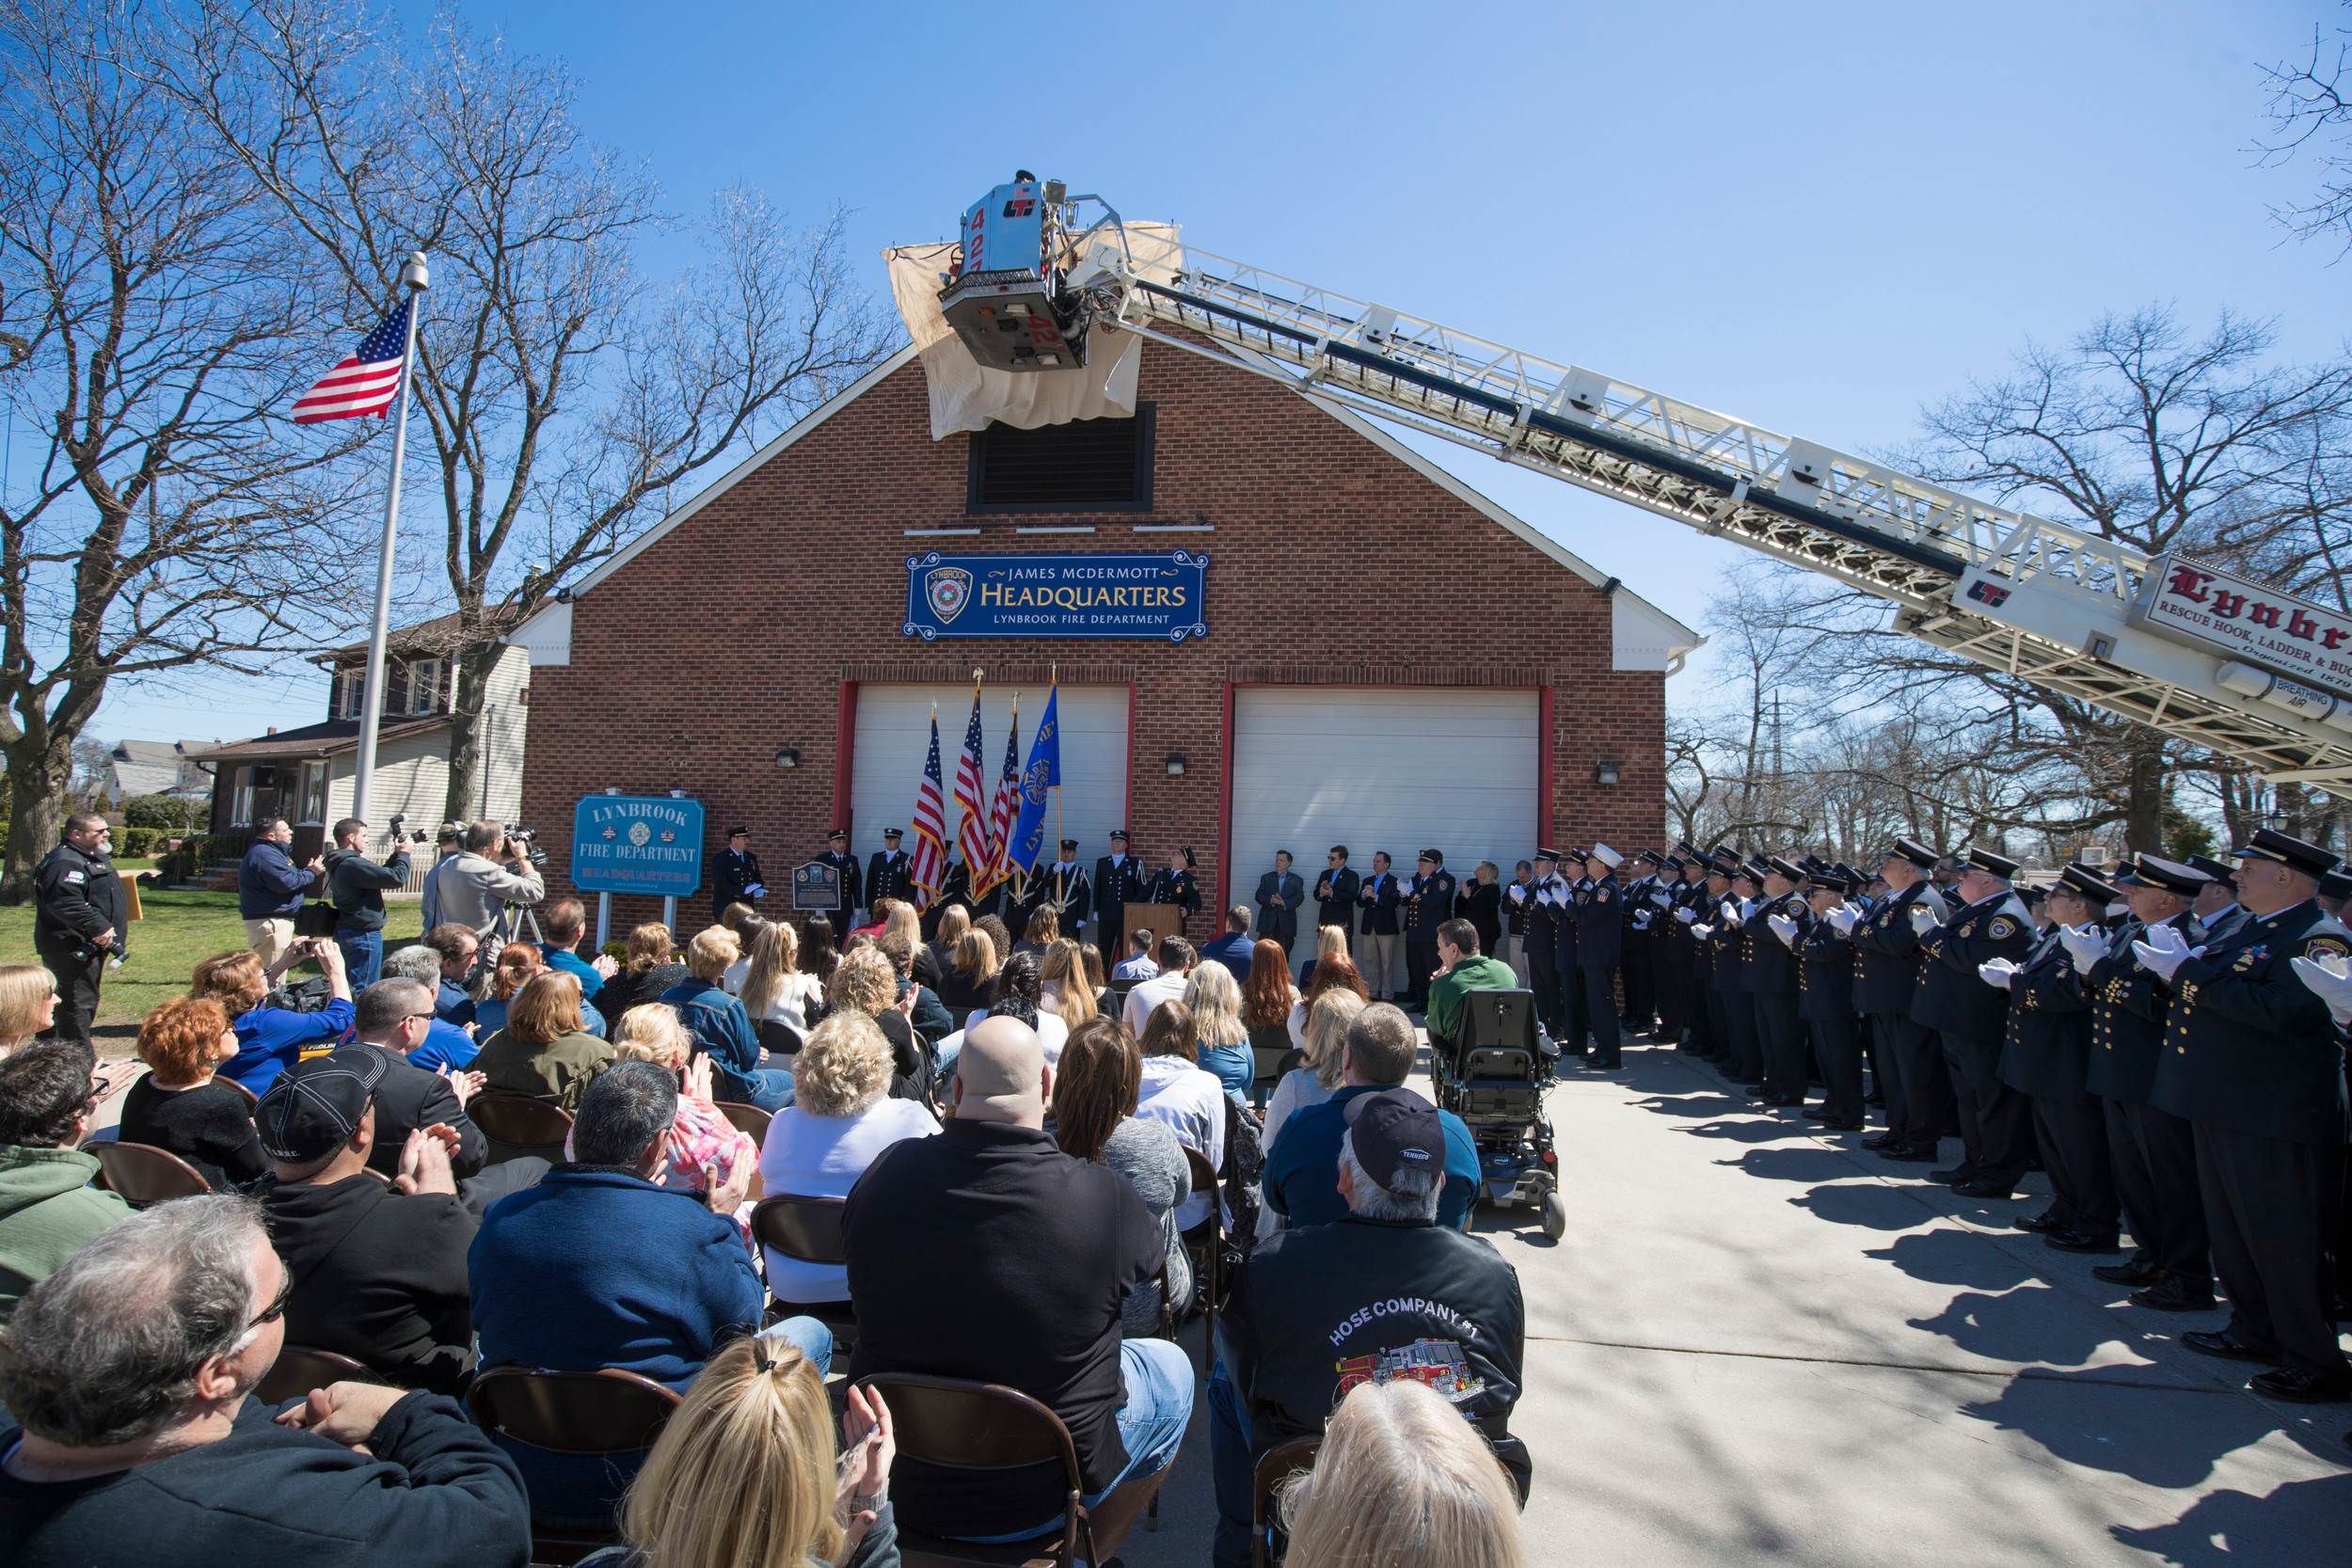 About 200 residents, elected officials and Lynbrook Fire Department members gathered on April 9 when the Truck Company named its headquarters after late former Chief James McDermott.